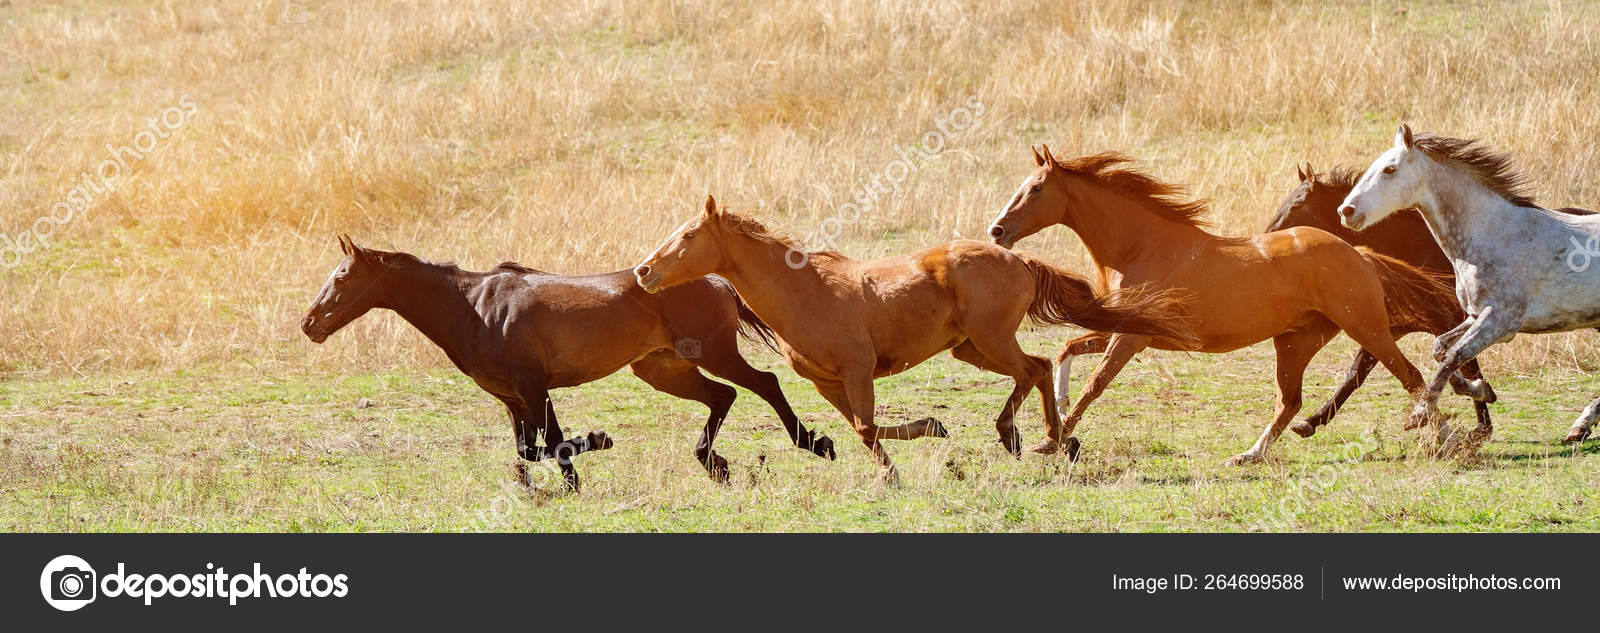 A Herd Of Wild Horses Racing Across Country Stock Photo C Jacksonstockphotography 264699588